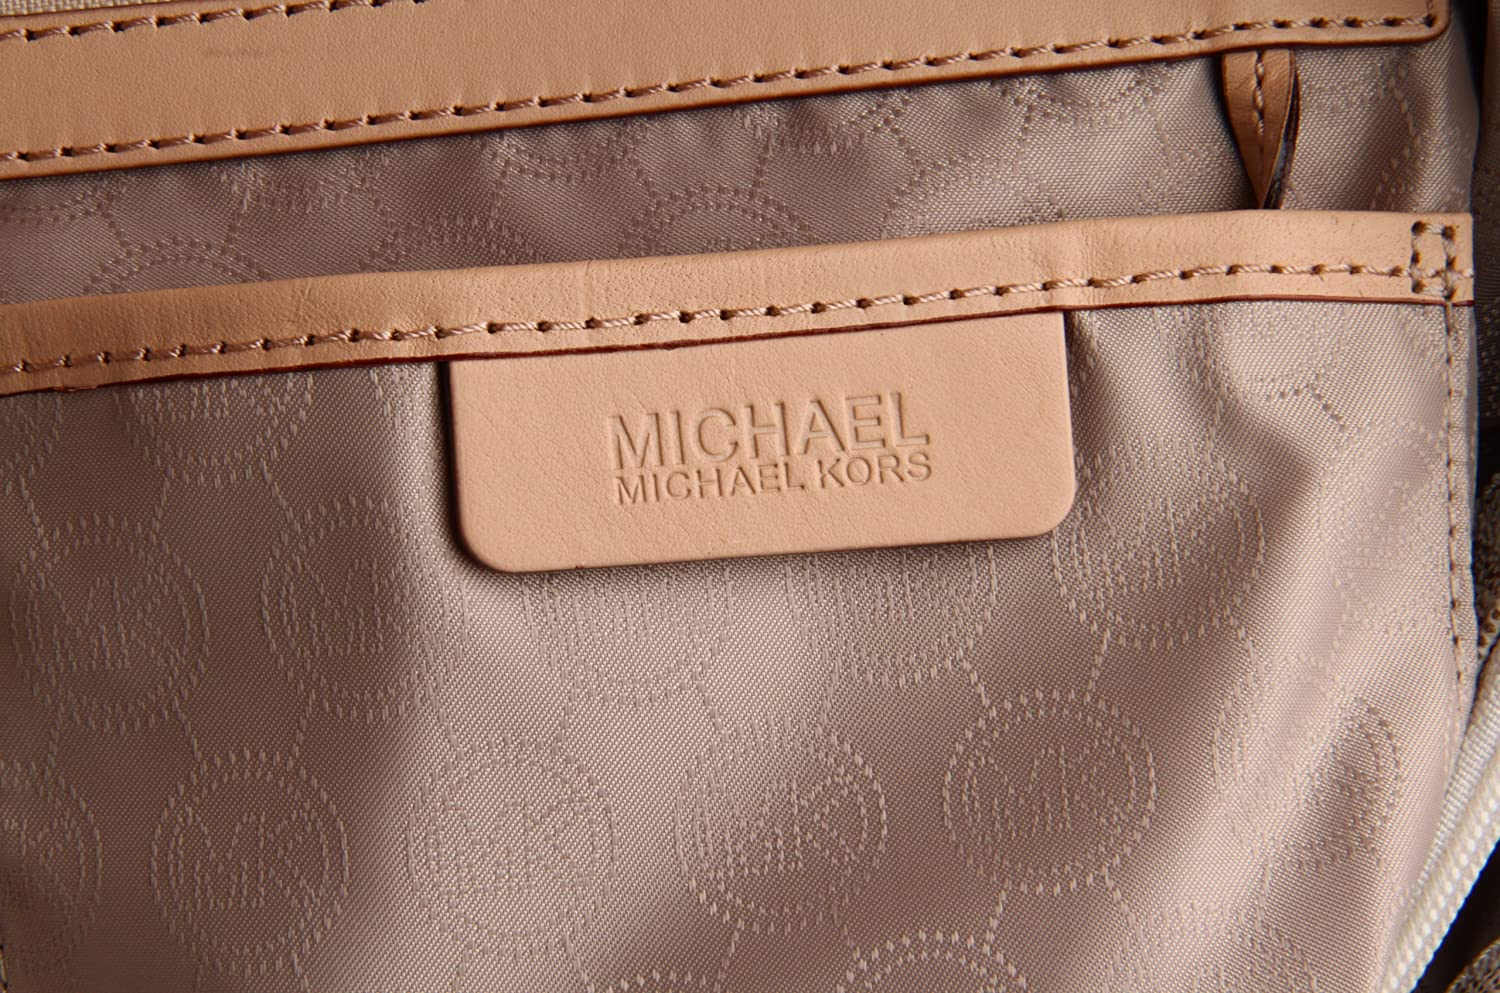 Purse Made In Kors China Michael WD2eYHIE9